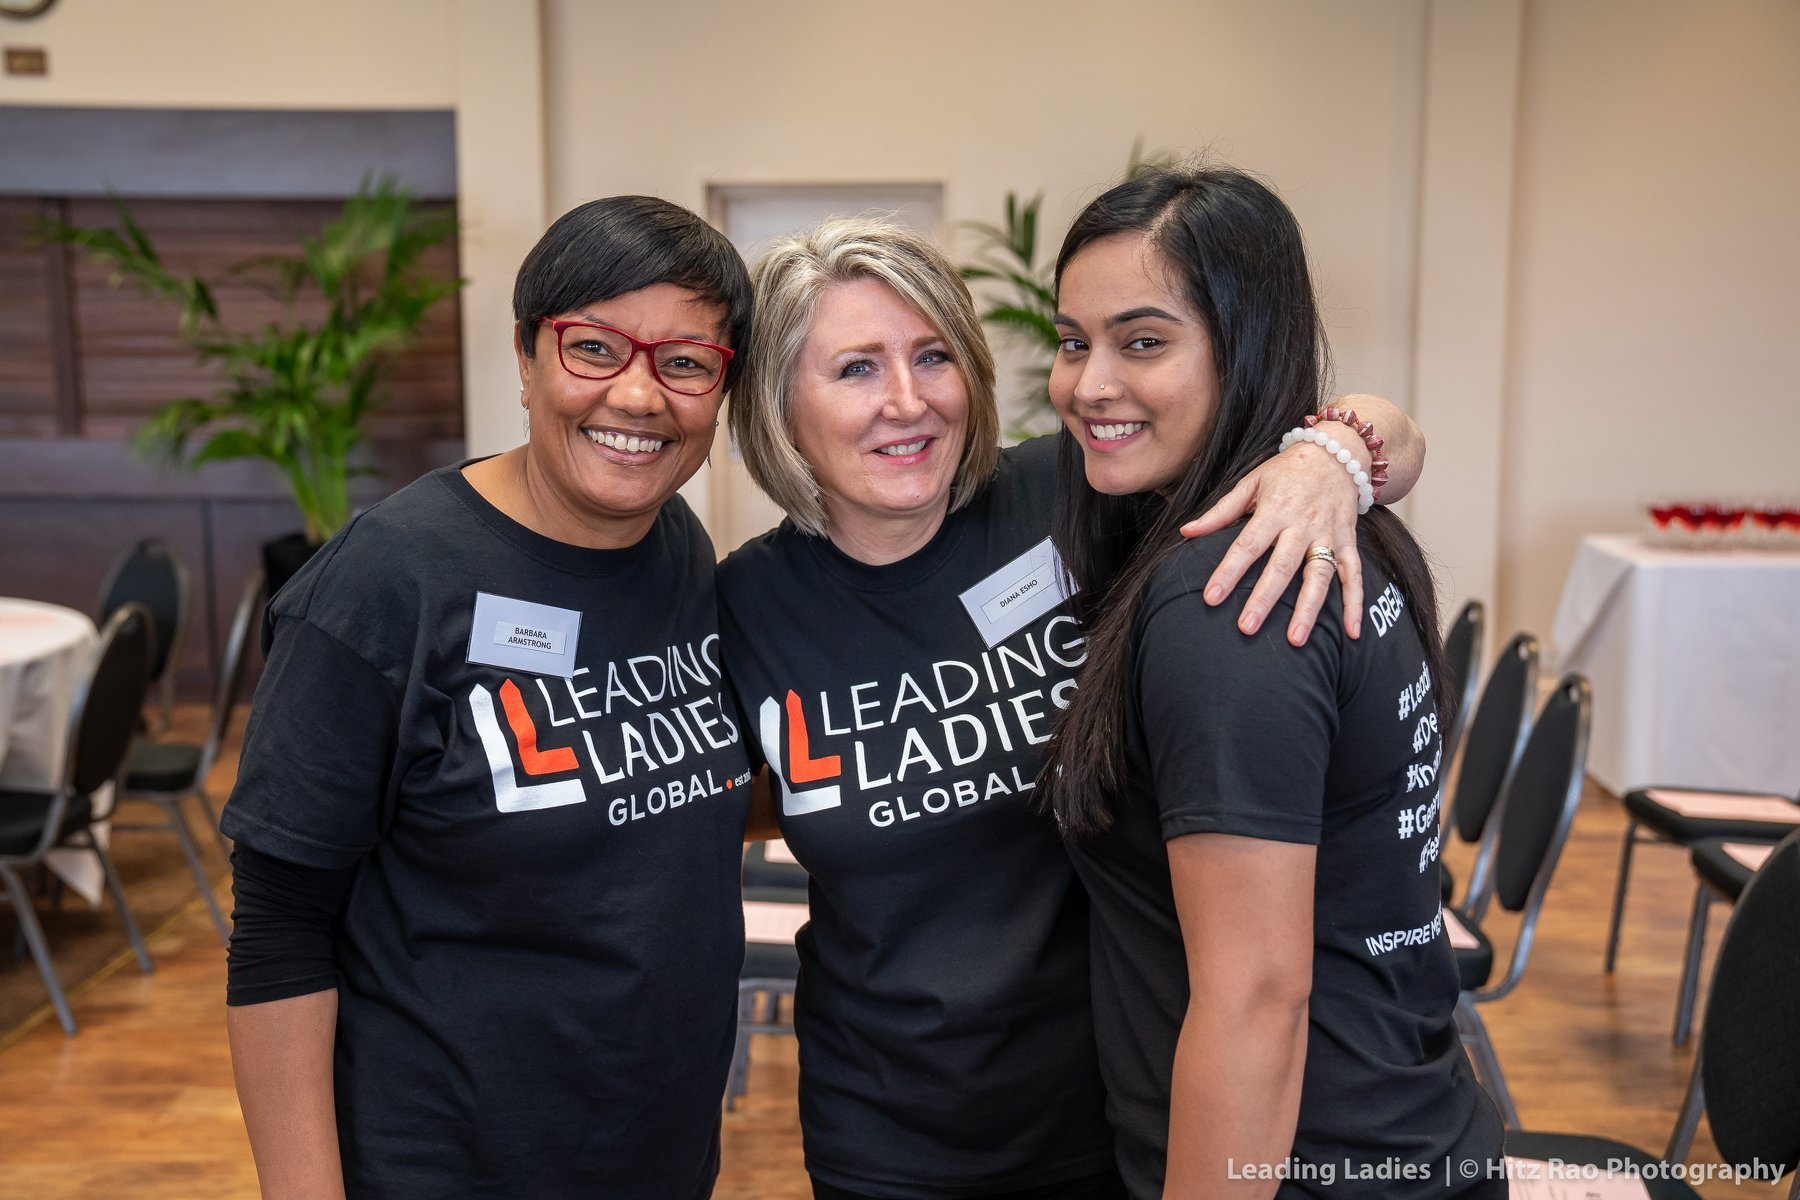 The Leading Ladies Launch Event